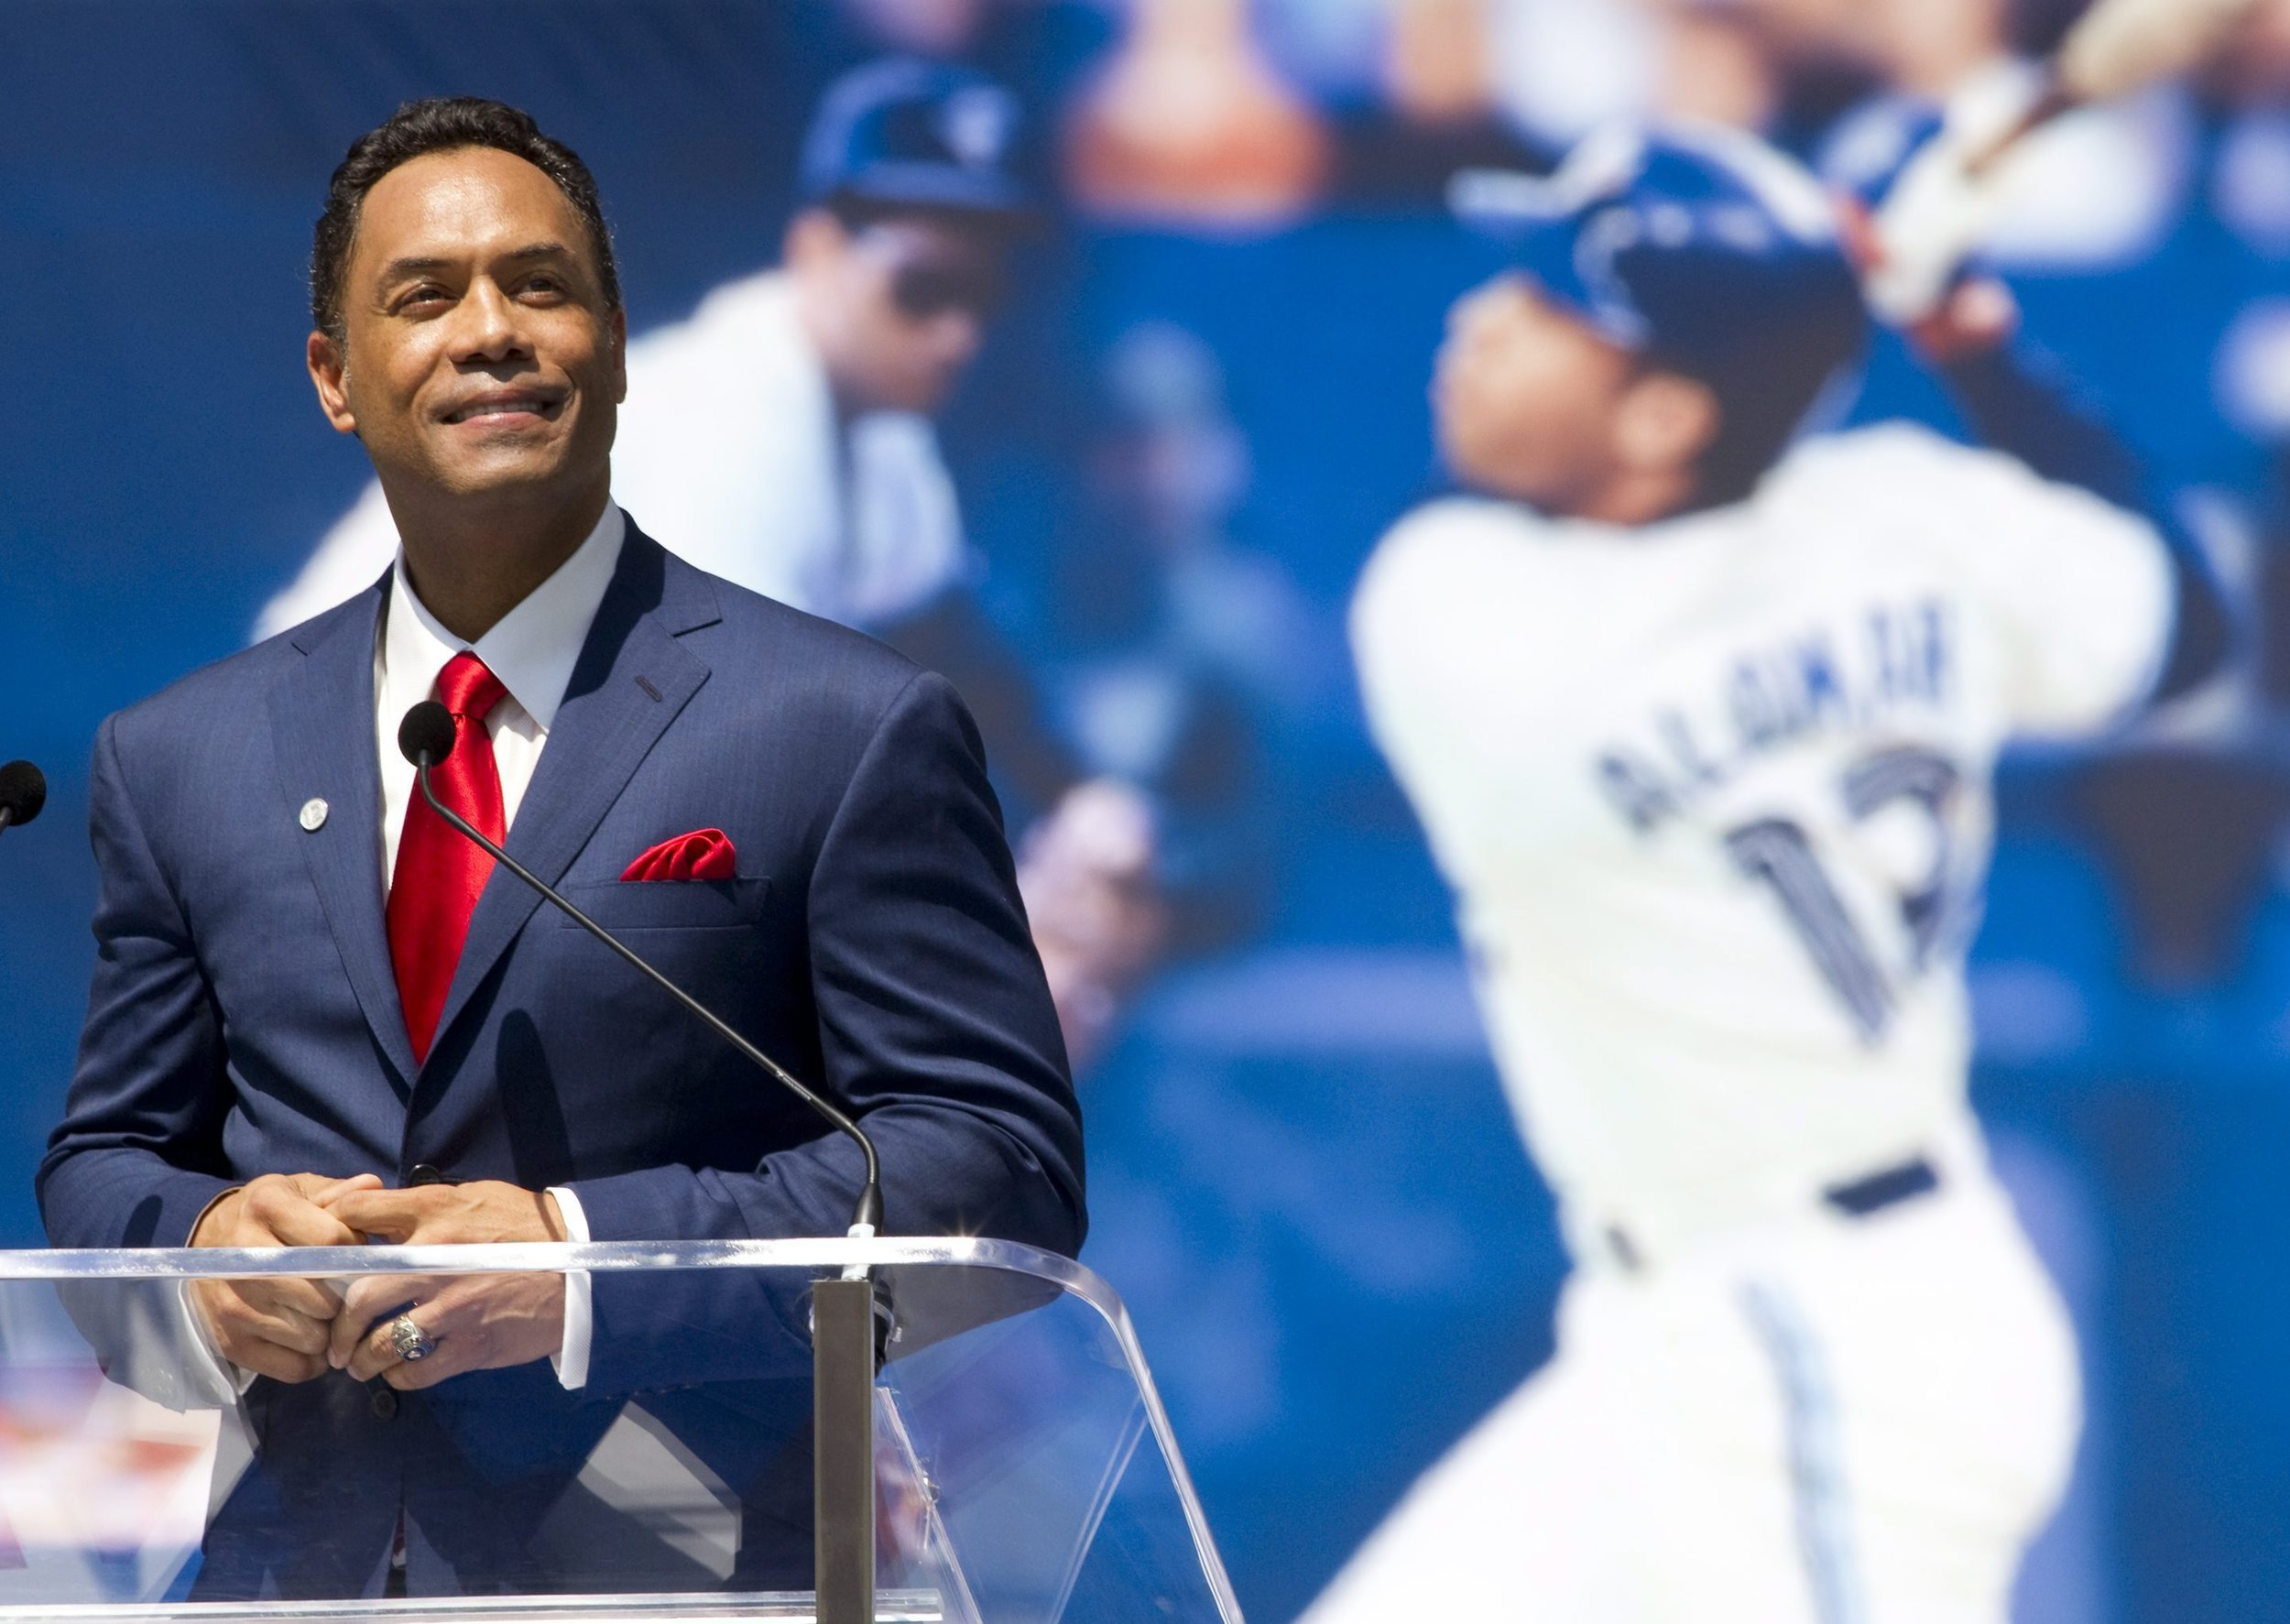 Blue Jays Hall of Famer Robbie Alomar says that the Jays have the players now, they need the support of the 26th Man ... the fans, sounding like Dave WInfield in 1992.